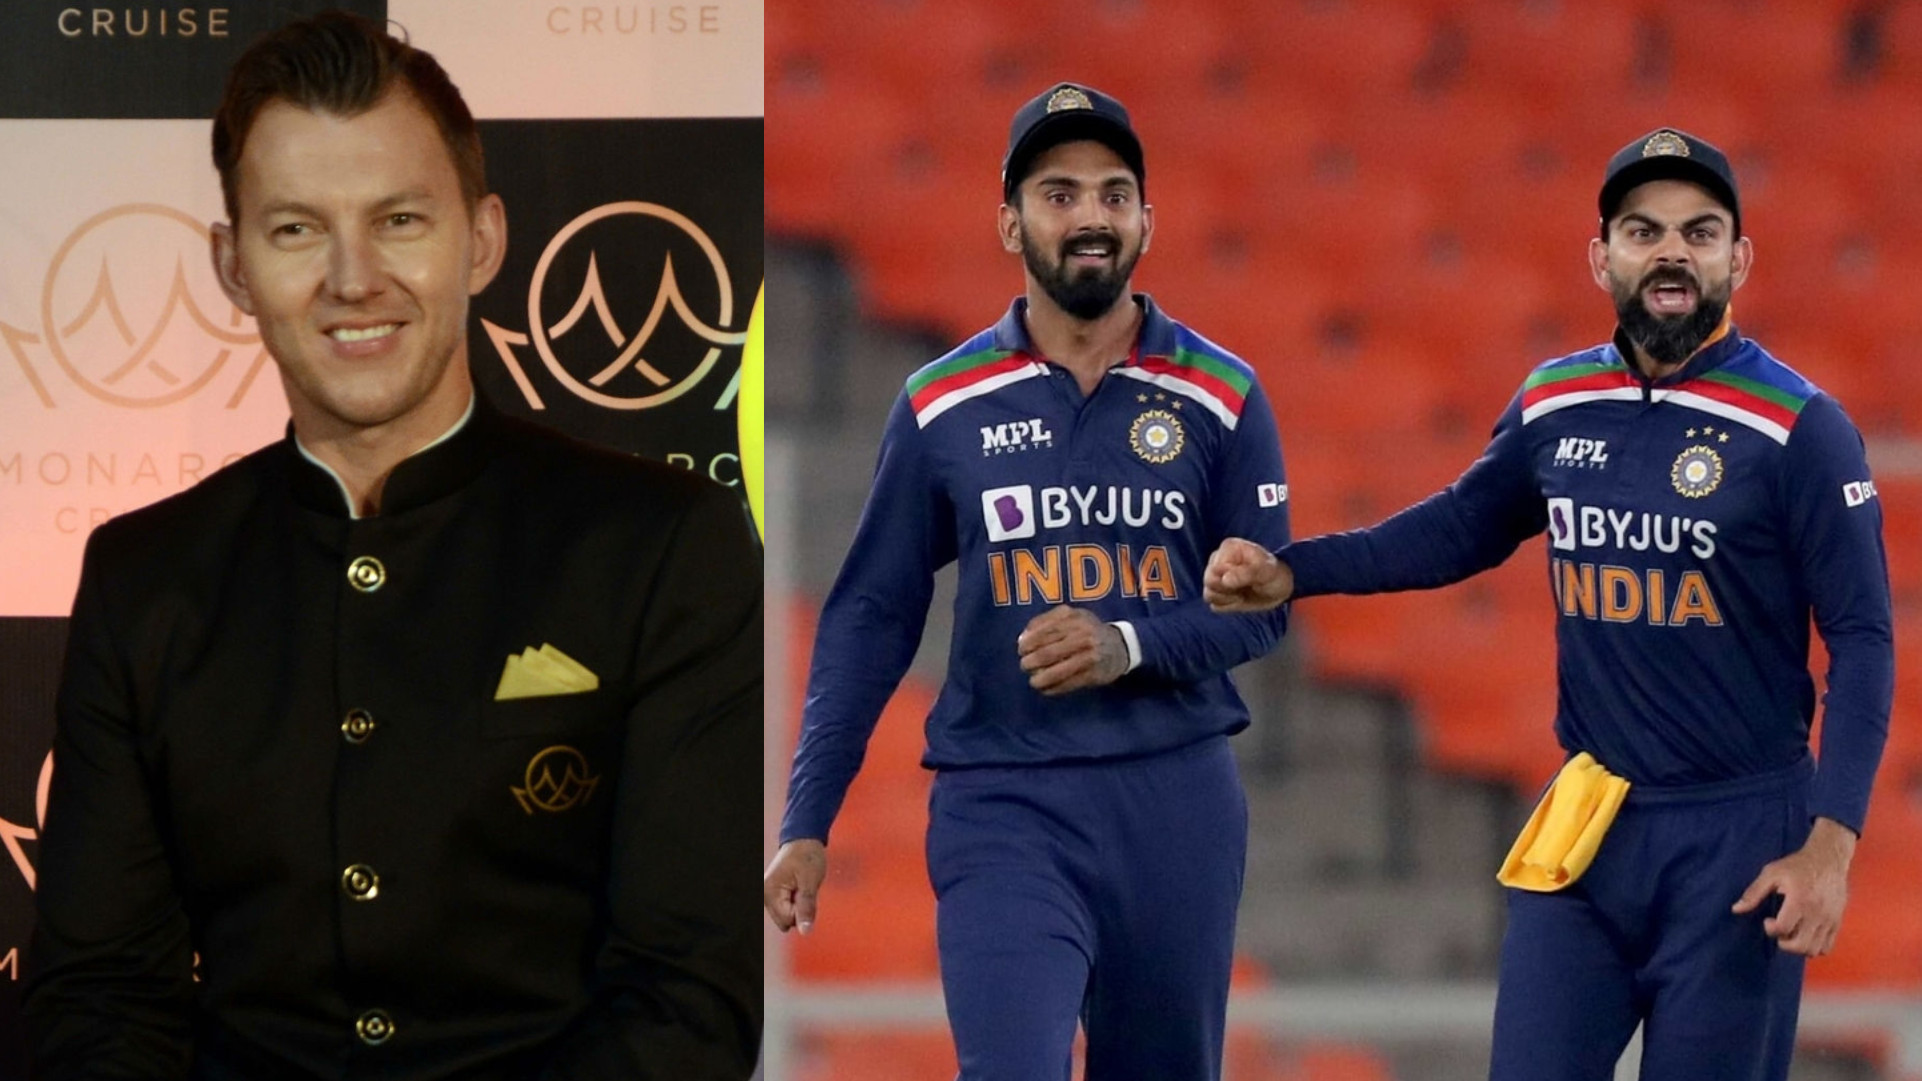 T20 World Cup 2021: Brett Lee feels India should build their batting around Rahul to ease the pressure off Kohli